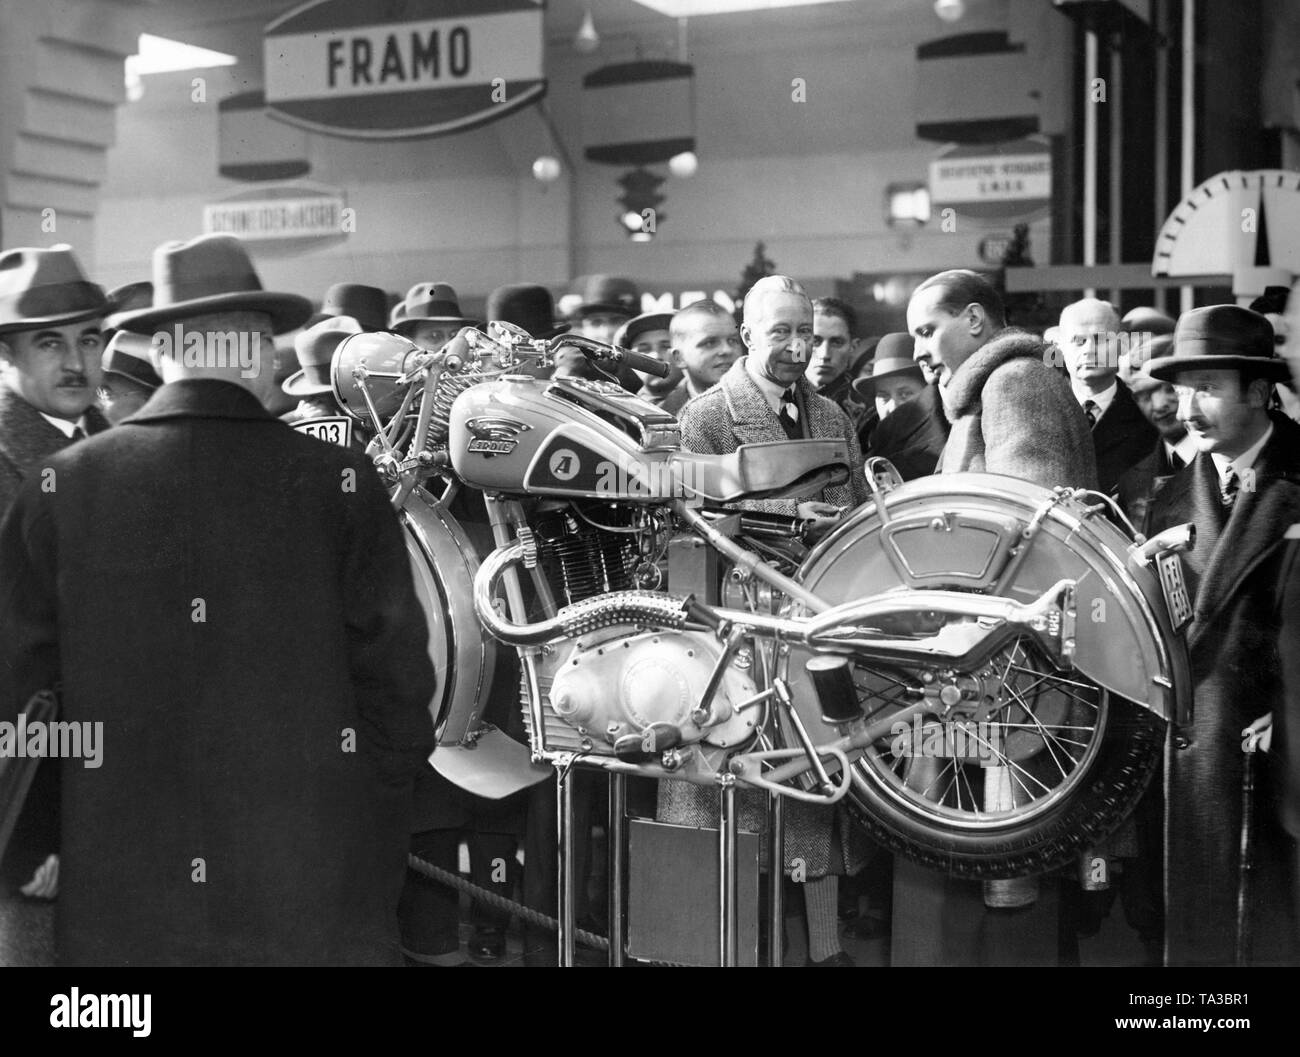 Crown Prince Wilhelm (in the middle behind the motorcycle) probably at a motor show in Berlin. He is looking at a motorcycle of the brand Ardie. - Stock Image